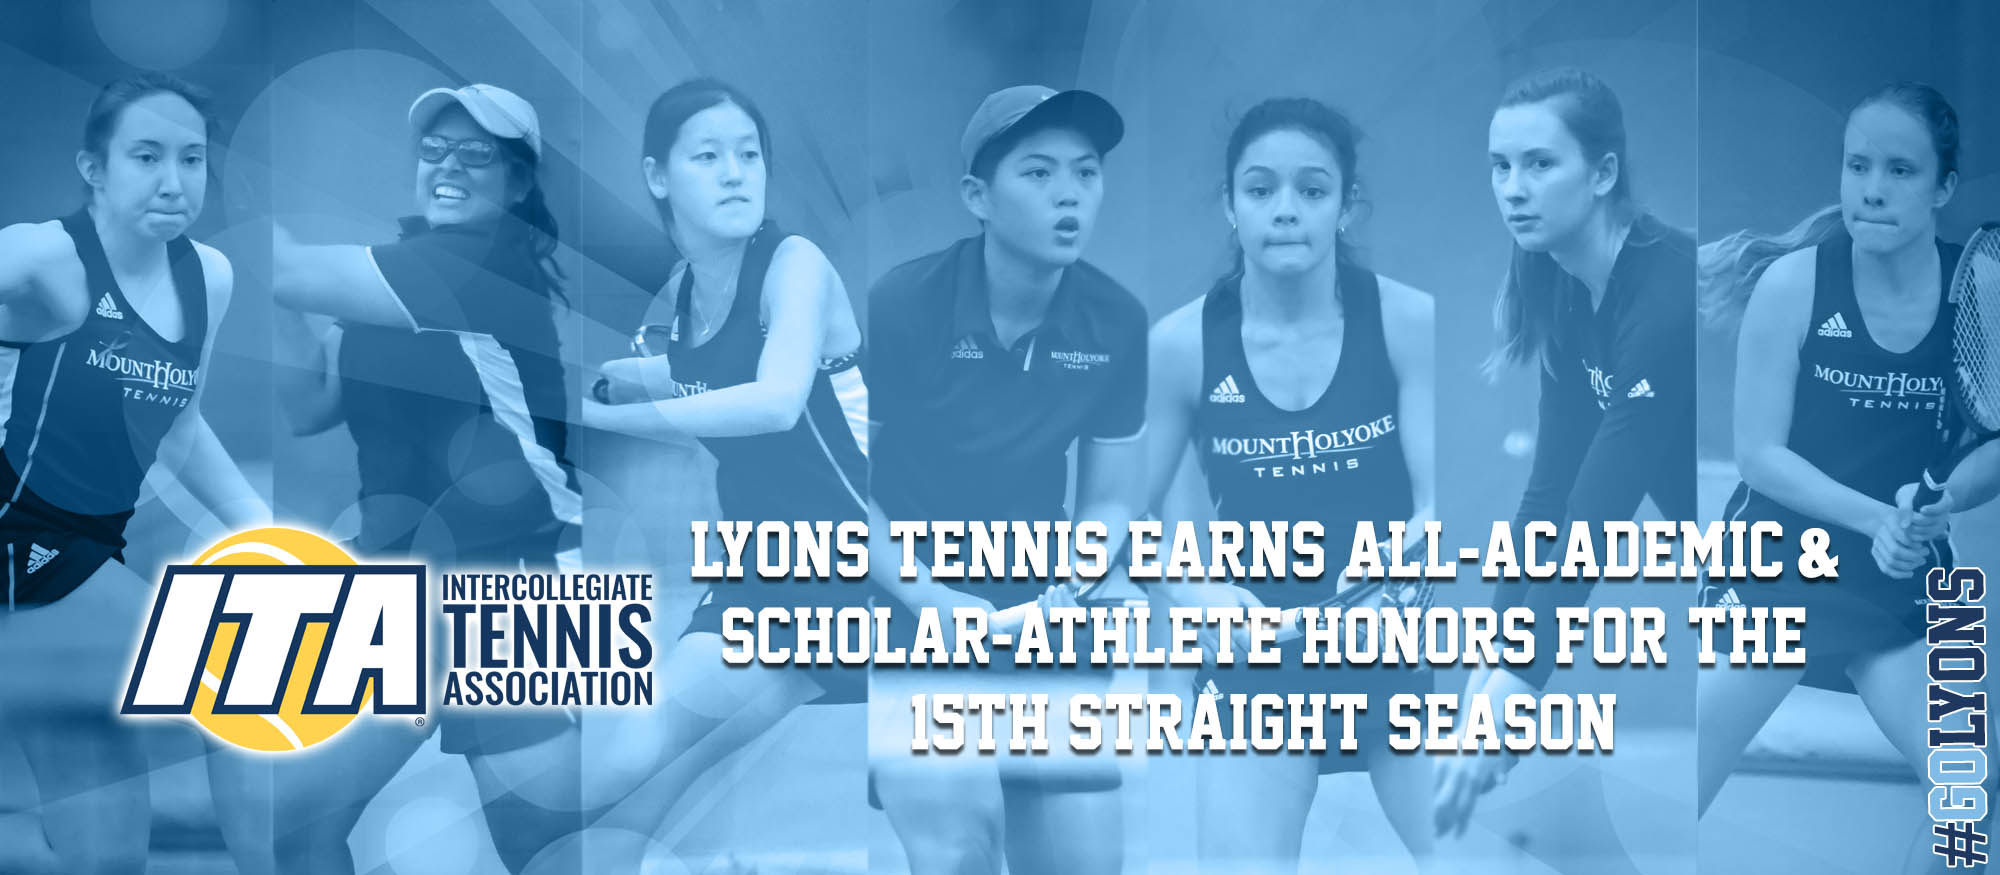 Photo featuring the seven Lyons tennis players honored as 2018 ITA Scholar-Athletes, including (left to right): Katie Schumacher, Ishita Tibrewal, Clara Wang, Ching-Ching Wang, Catherine Peabody, Joy Maran and Anya Gerasimova.